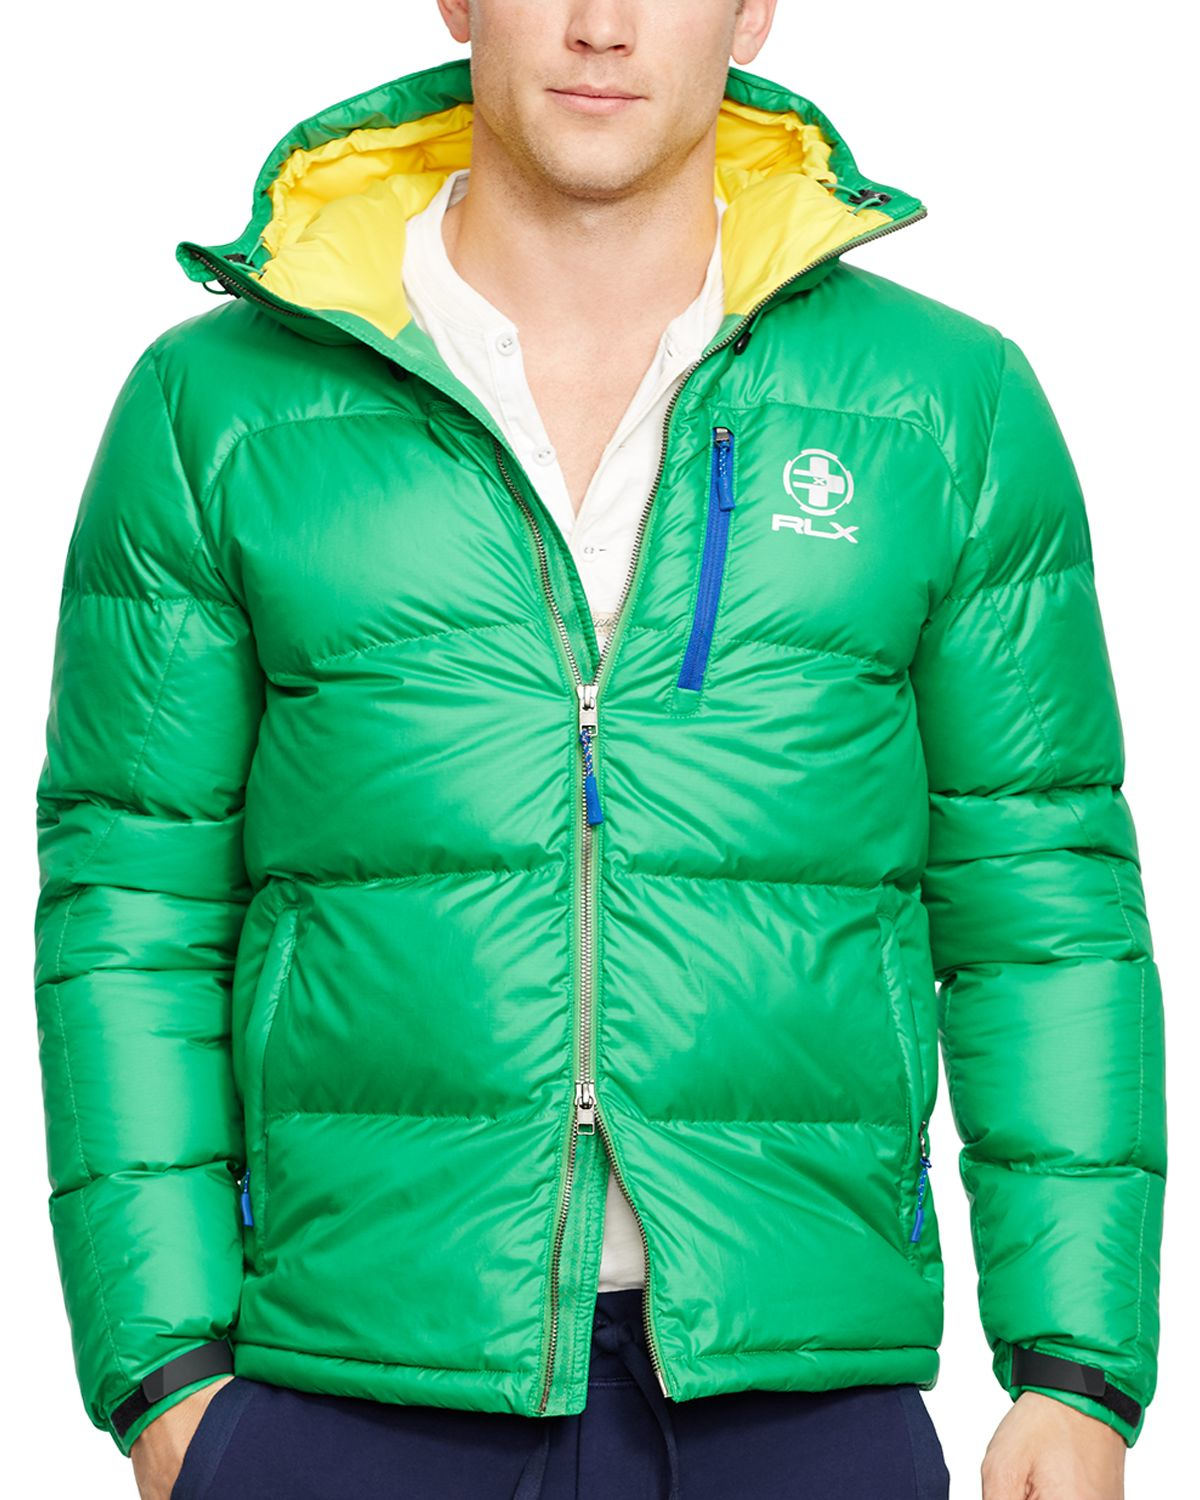 Polo Ralph Lauren Synthetic Rlx Ripstop Down Jacket in ...